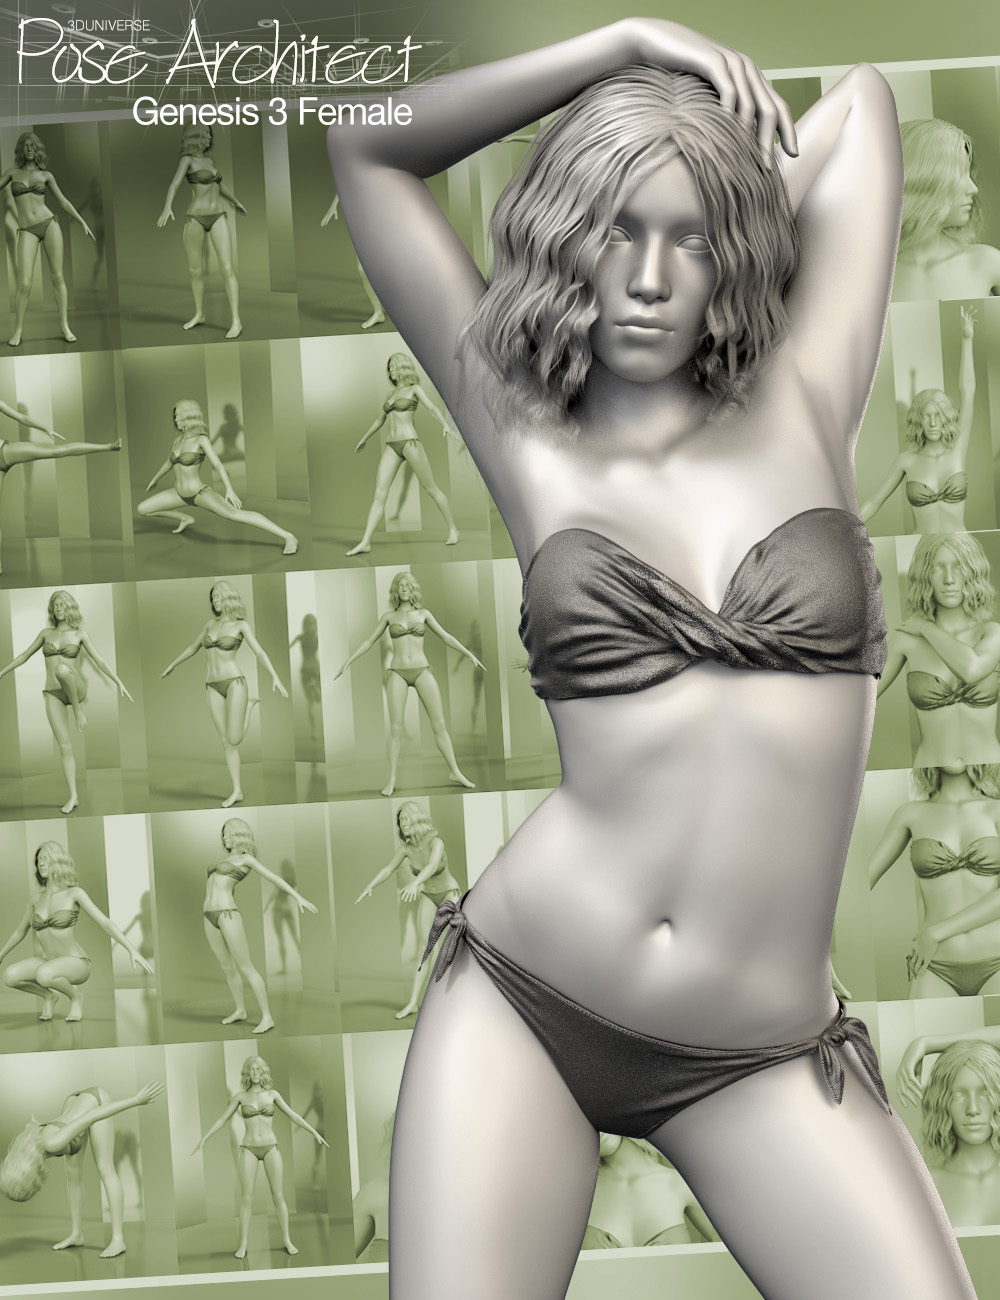 Pose Architect for Genesis 3 Female(s) by: 3D Universe, 3D Models by Daz 3D